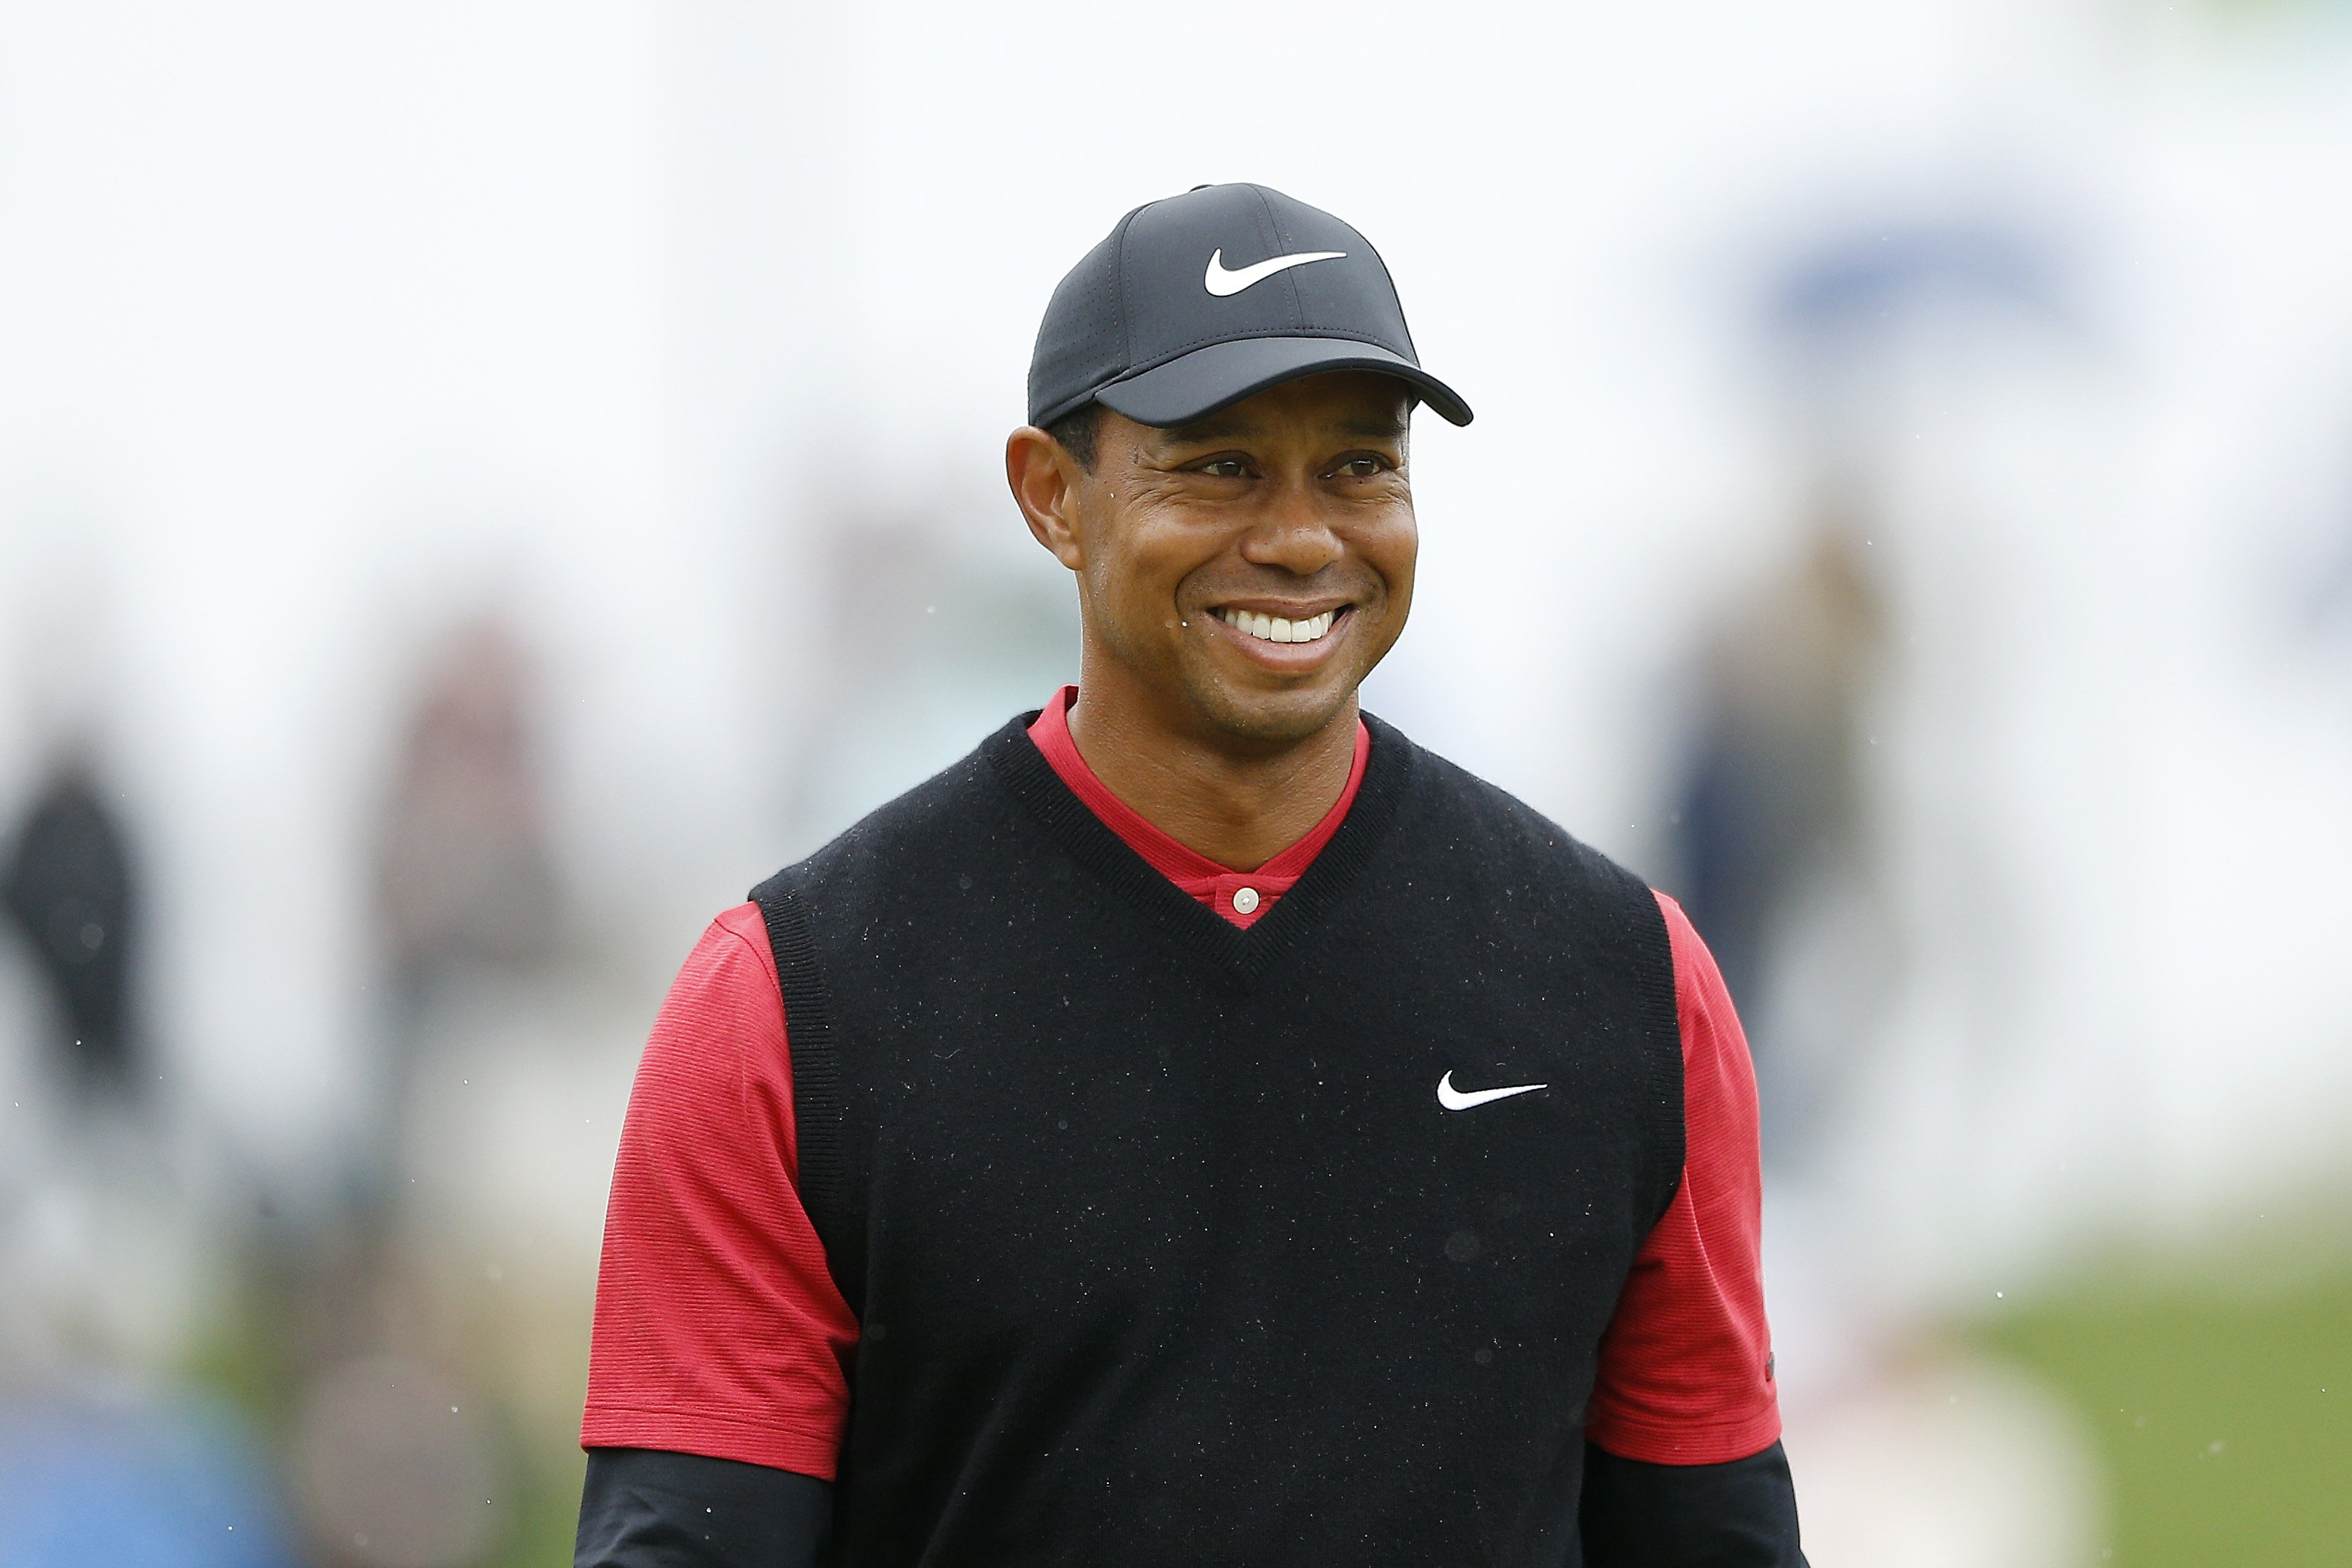 Image Credits: Getty Images / Michael Reaves | Tiger Woods of the United States reacts after chipping in from the bunker on the third hole during the final round of The PLAYERS Championship on The Stadium Course at TPC Sawgrass on March 17, 2019 in Ponte Vedra Beach, Florida.